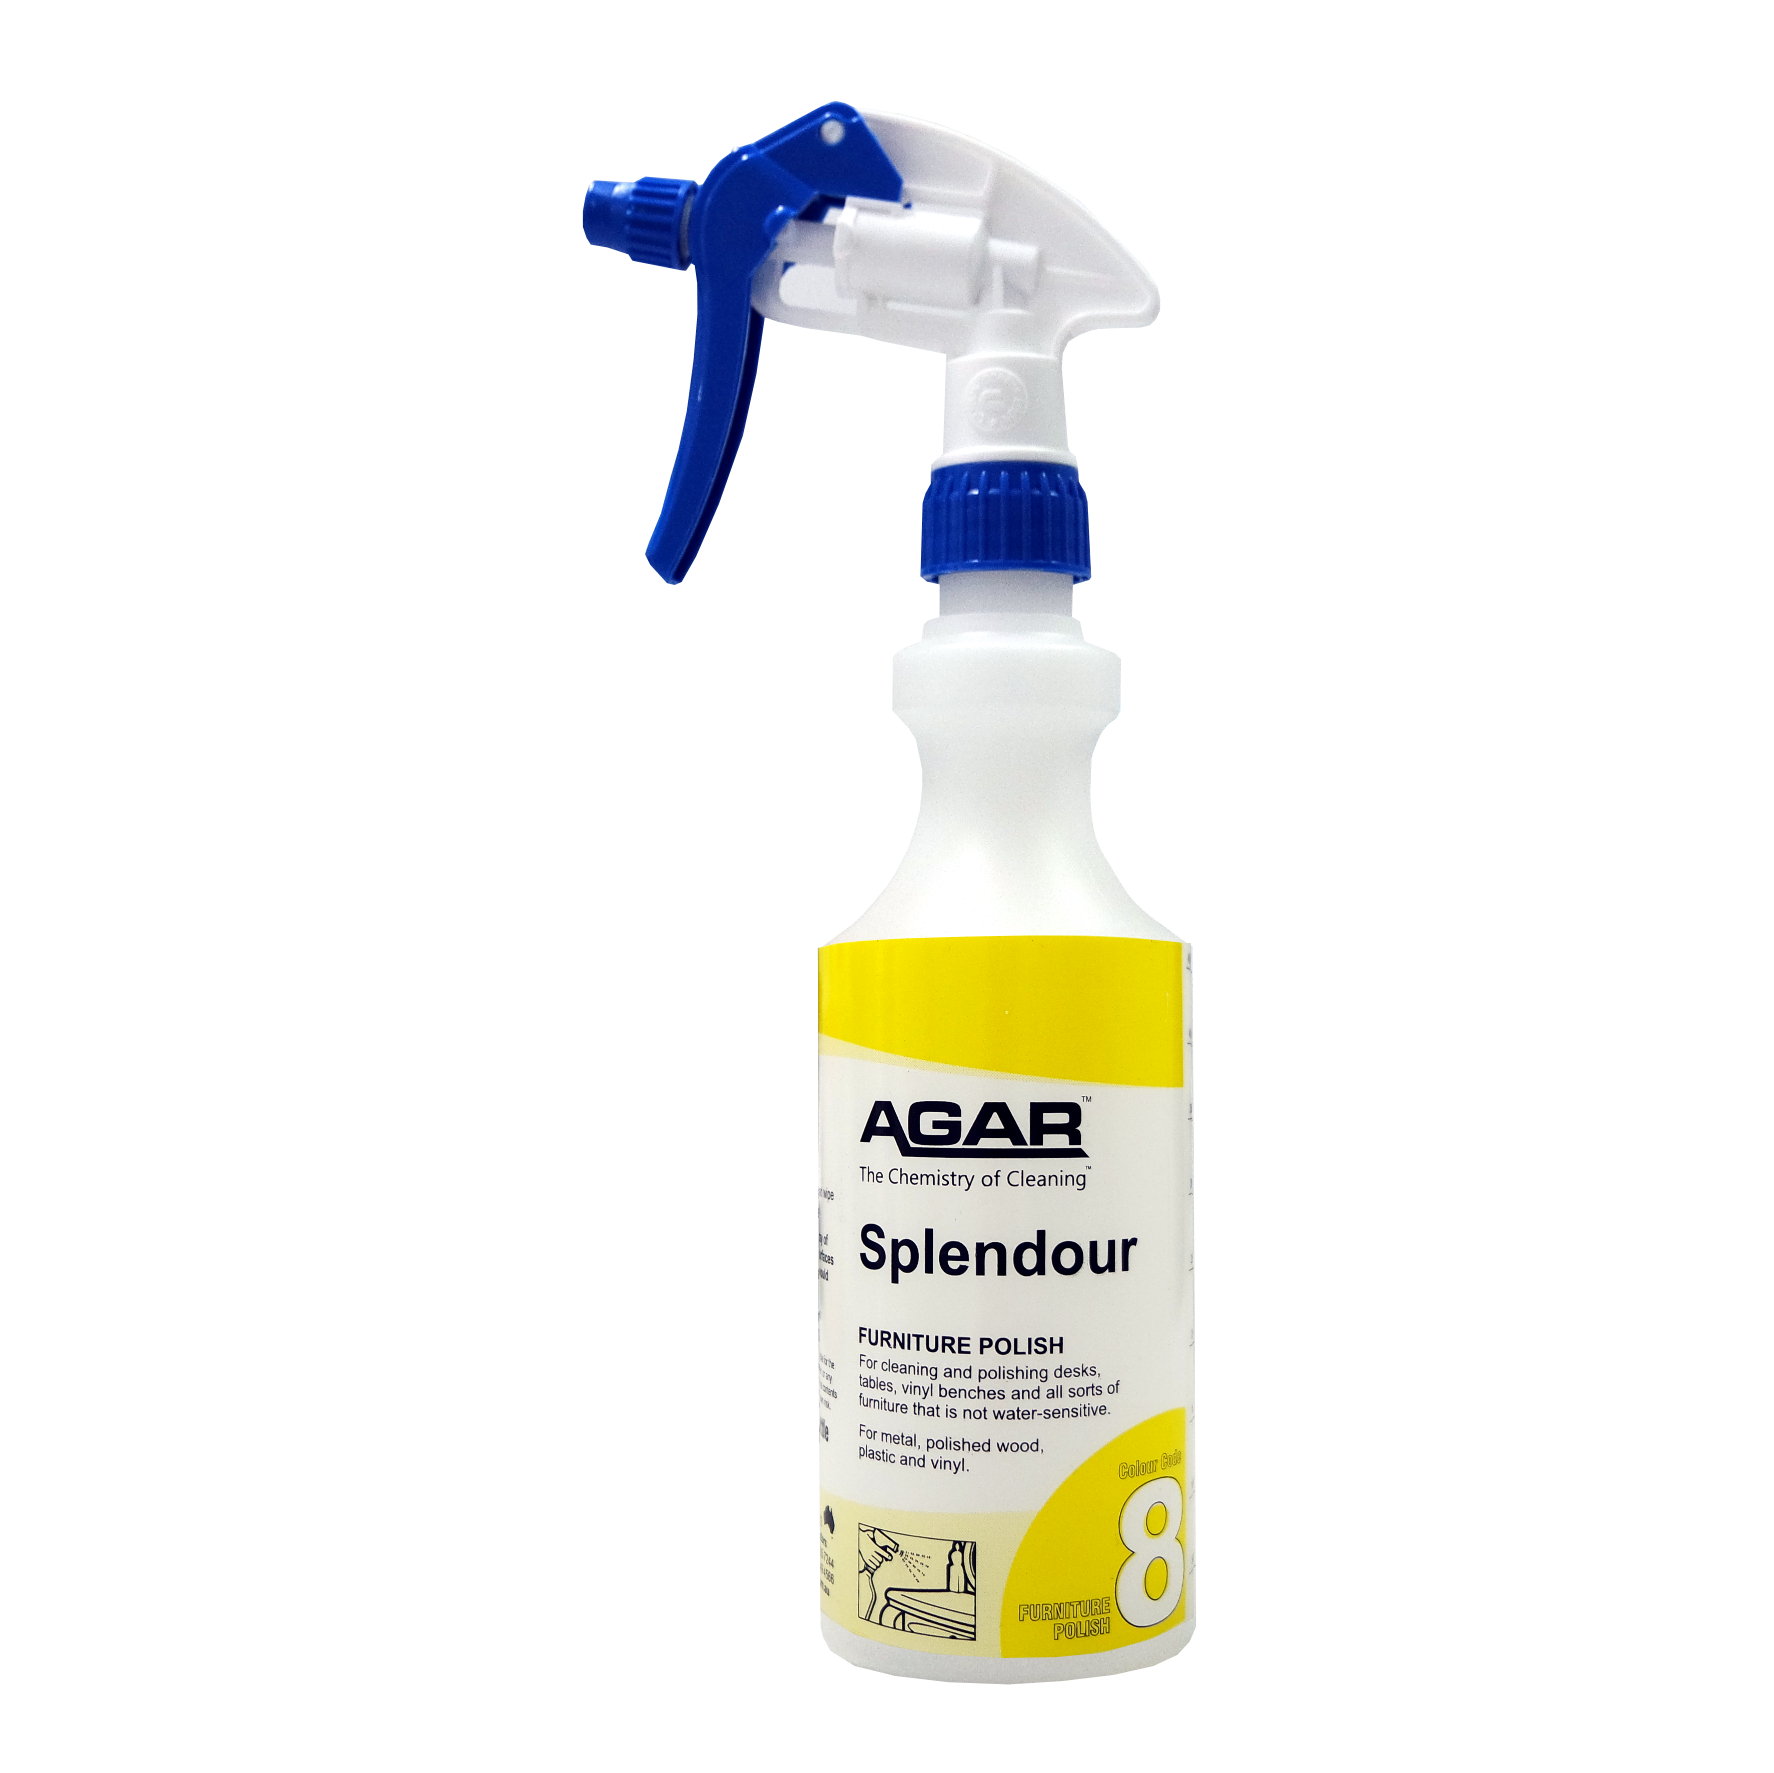 Spray Bottle For 8 Furniture Polish Online Cleaning Supplies